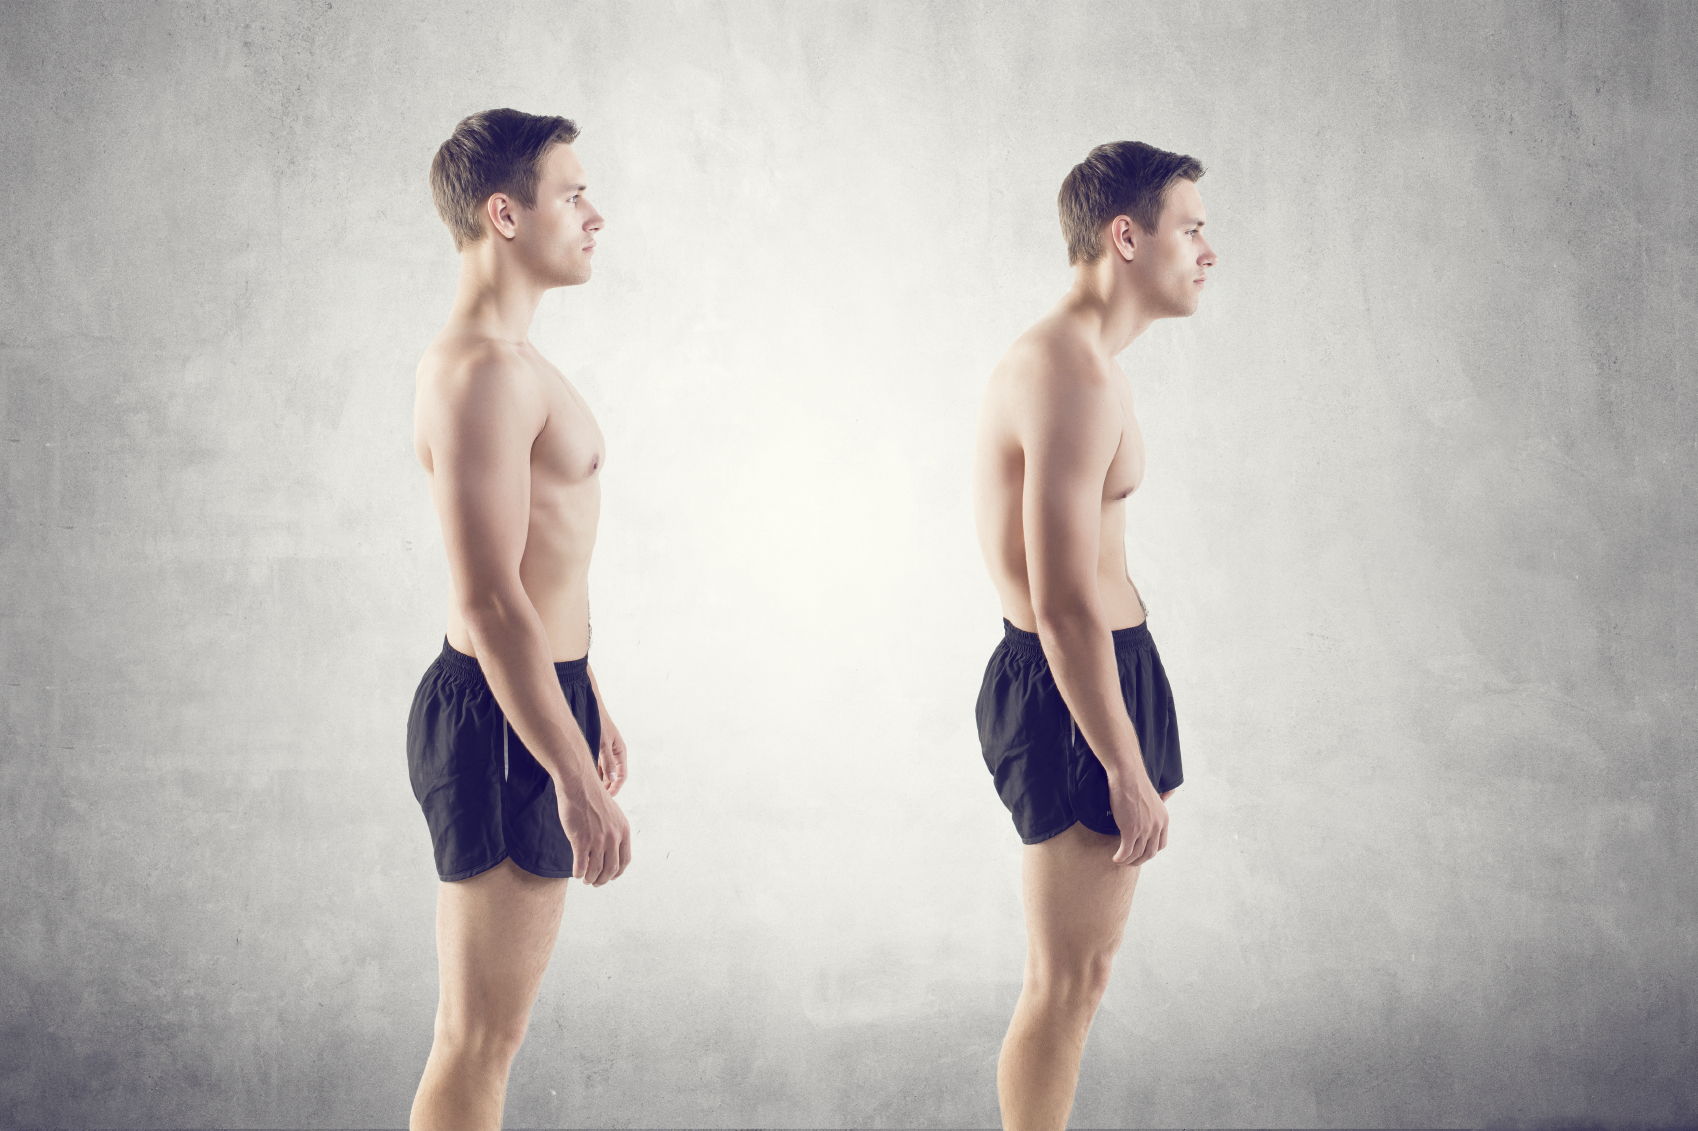 Suffering From Back, Hip, or Knee Pain?